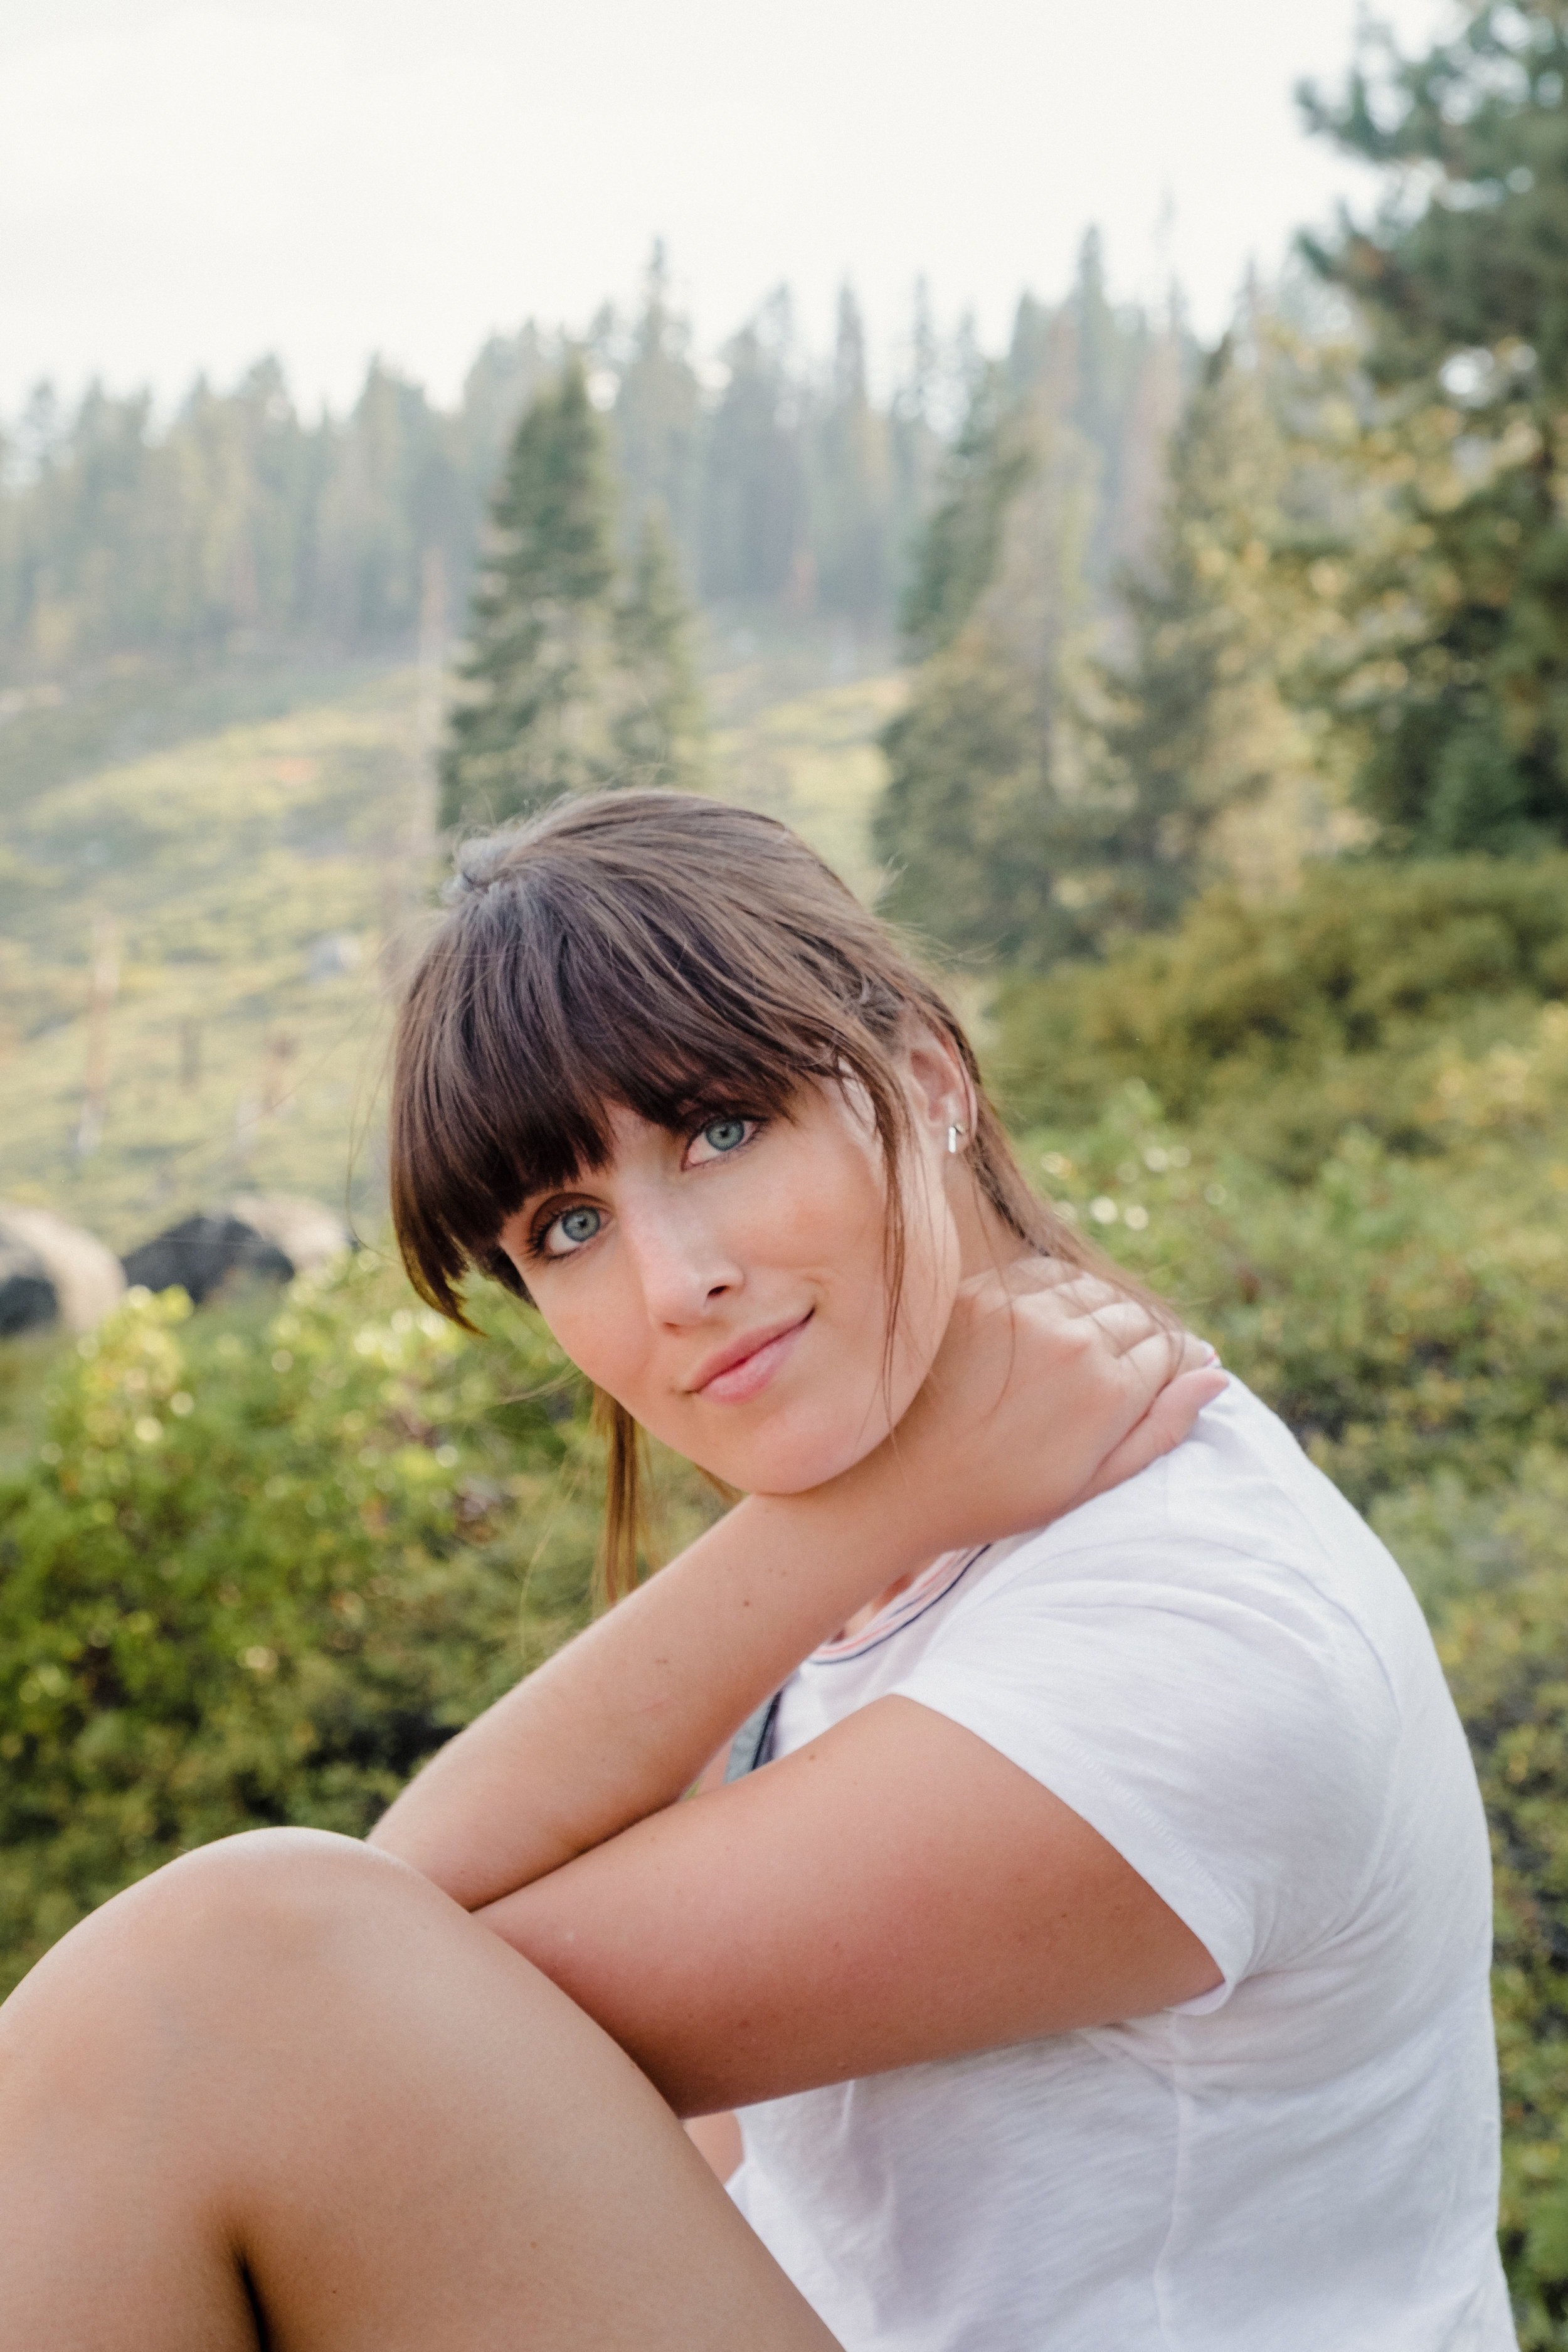 Chelsea, Washburn Point, Yosemite National Park